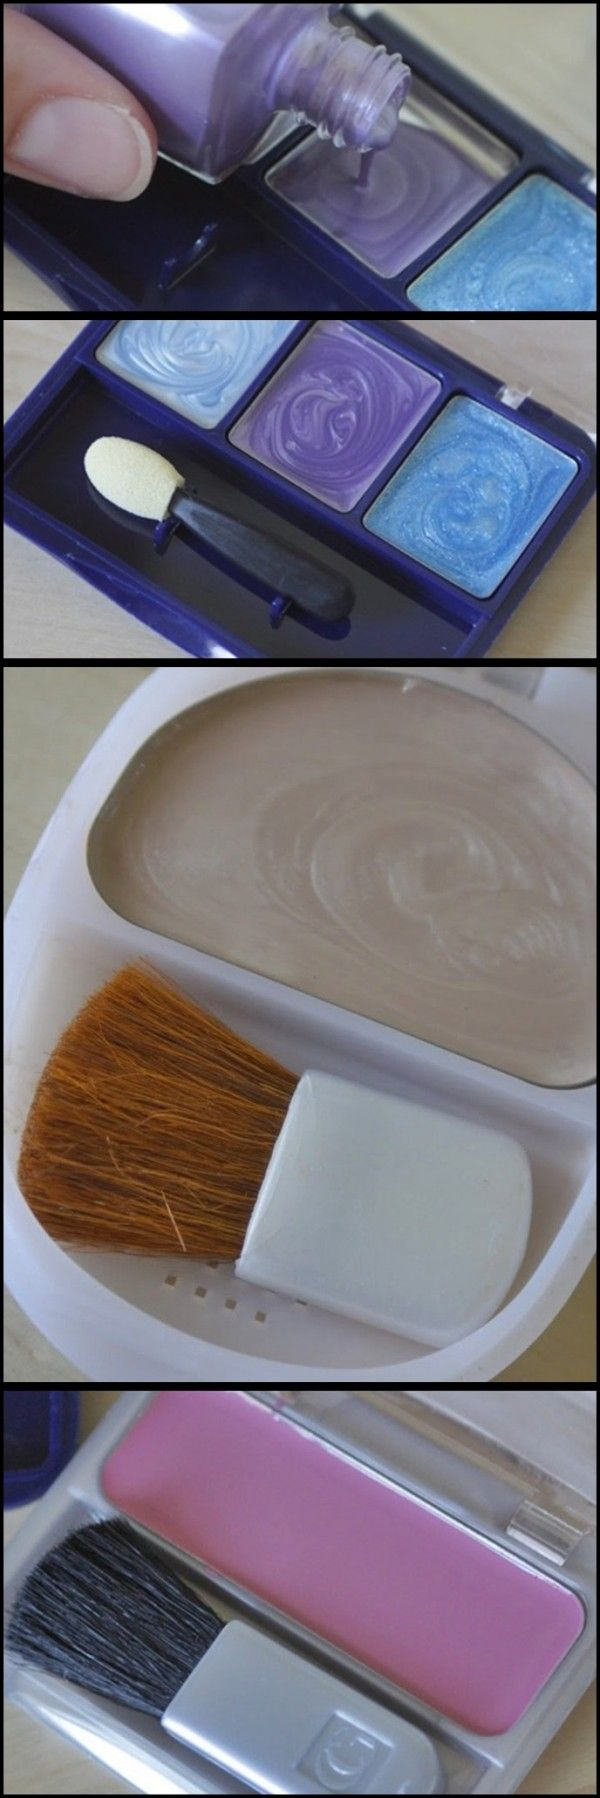 Make pretend makeup for your kids with empty containers and old nail polish you won't use again